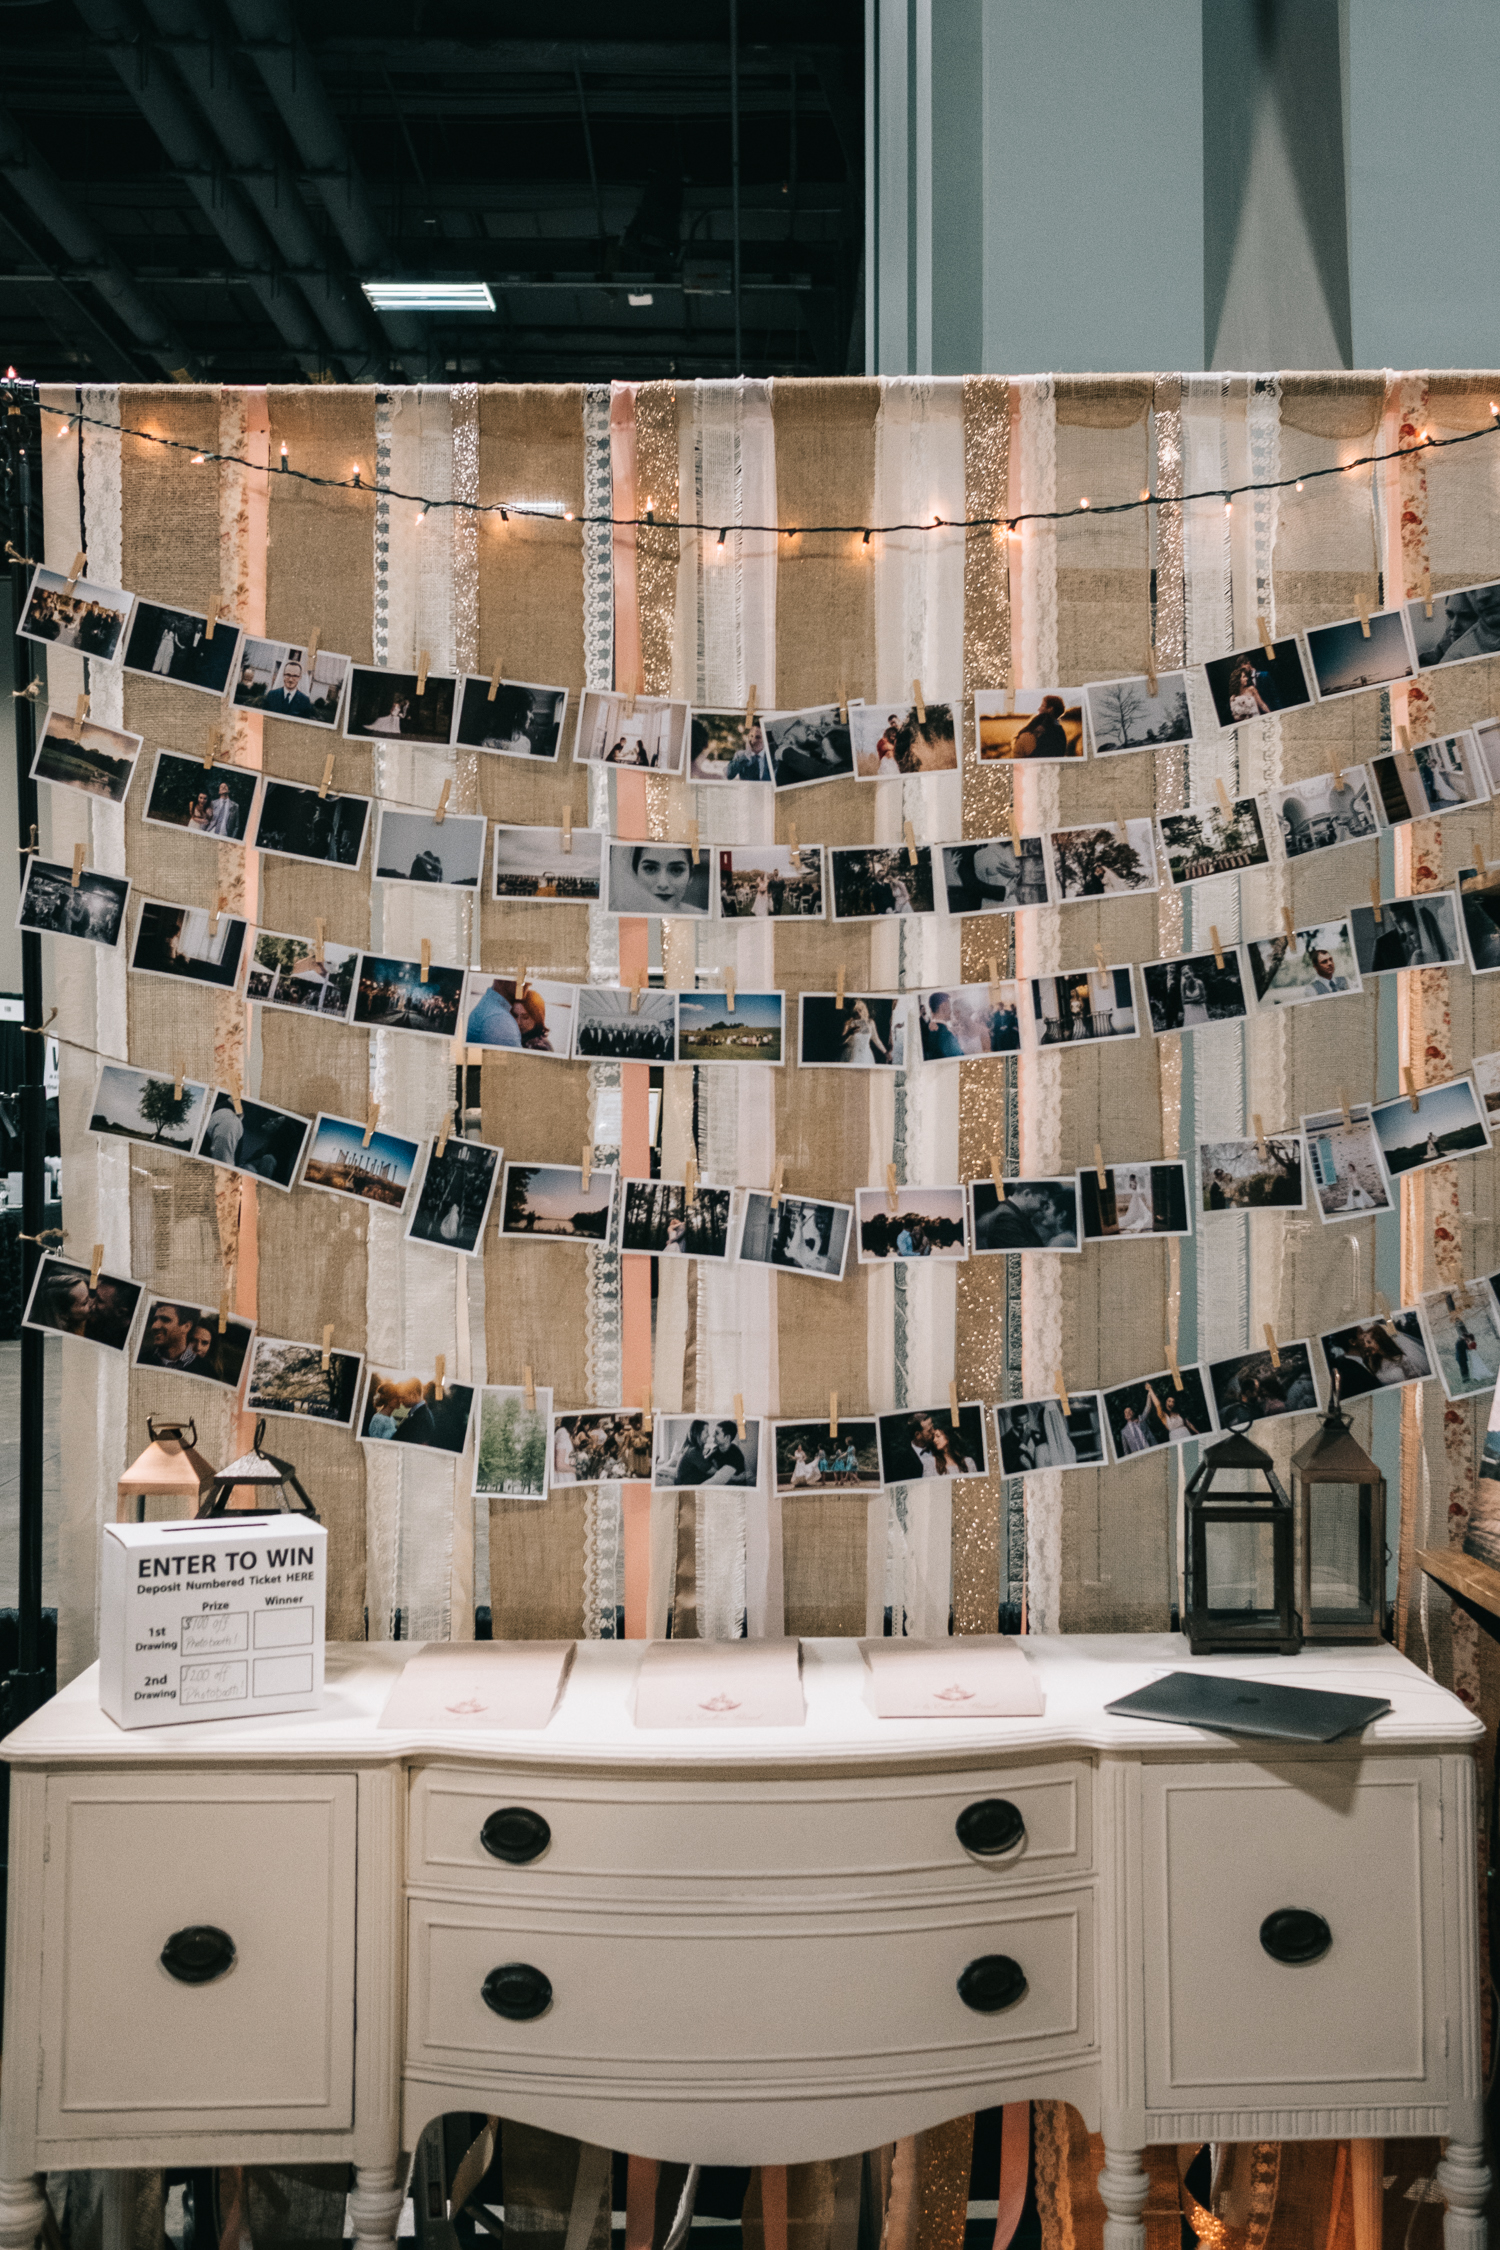 Photography bridal show exhibit design with vintage desk and photos